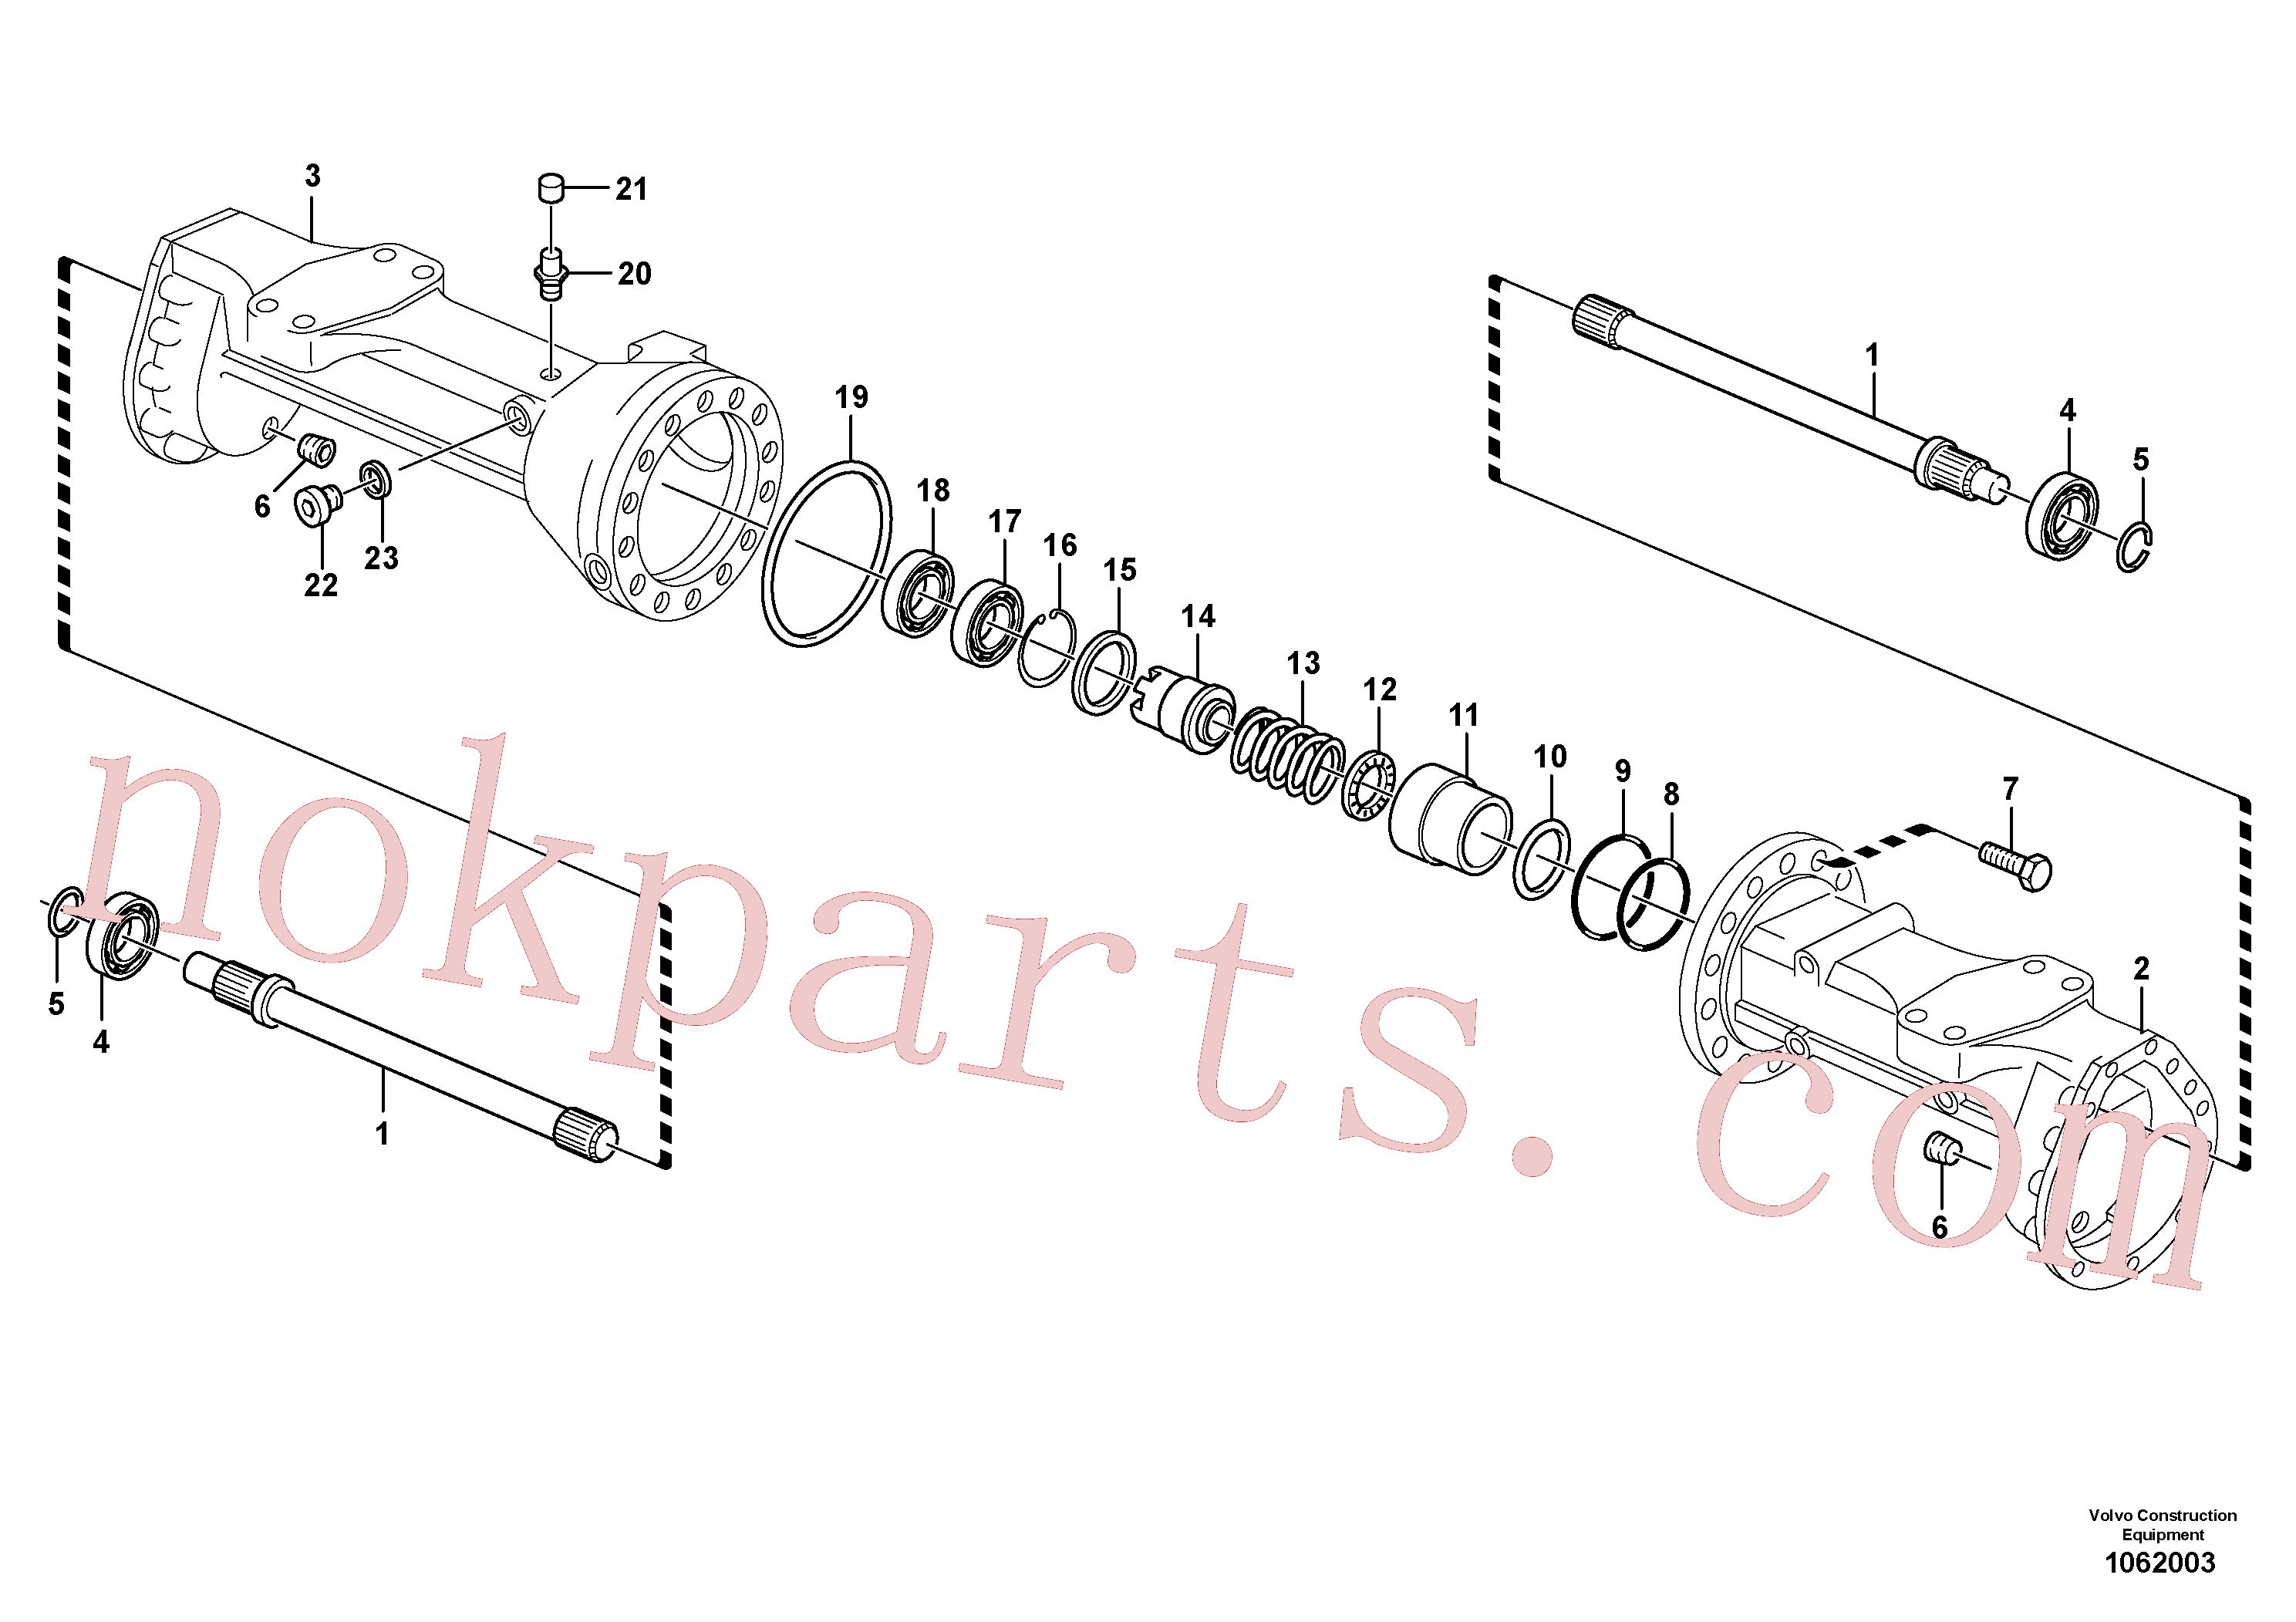 VOE15072314 for Volvo Housing - front axle(1062003 assembly)